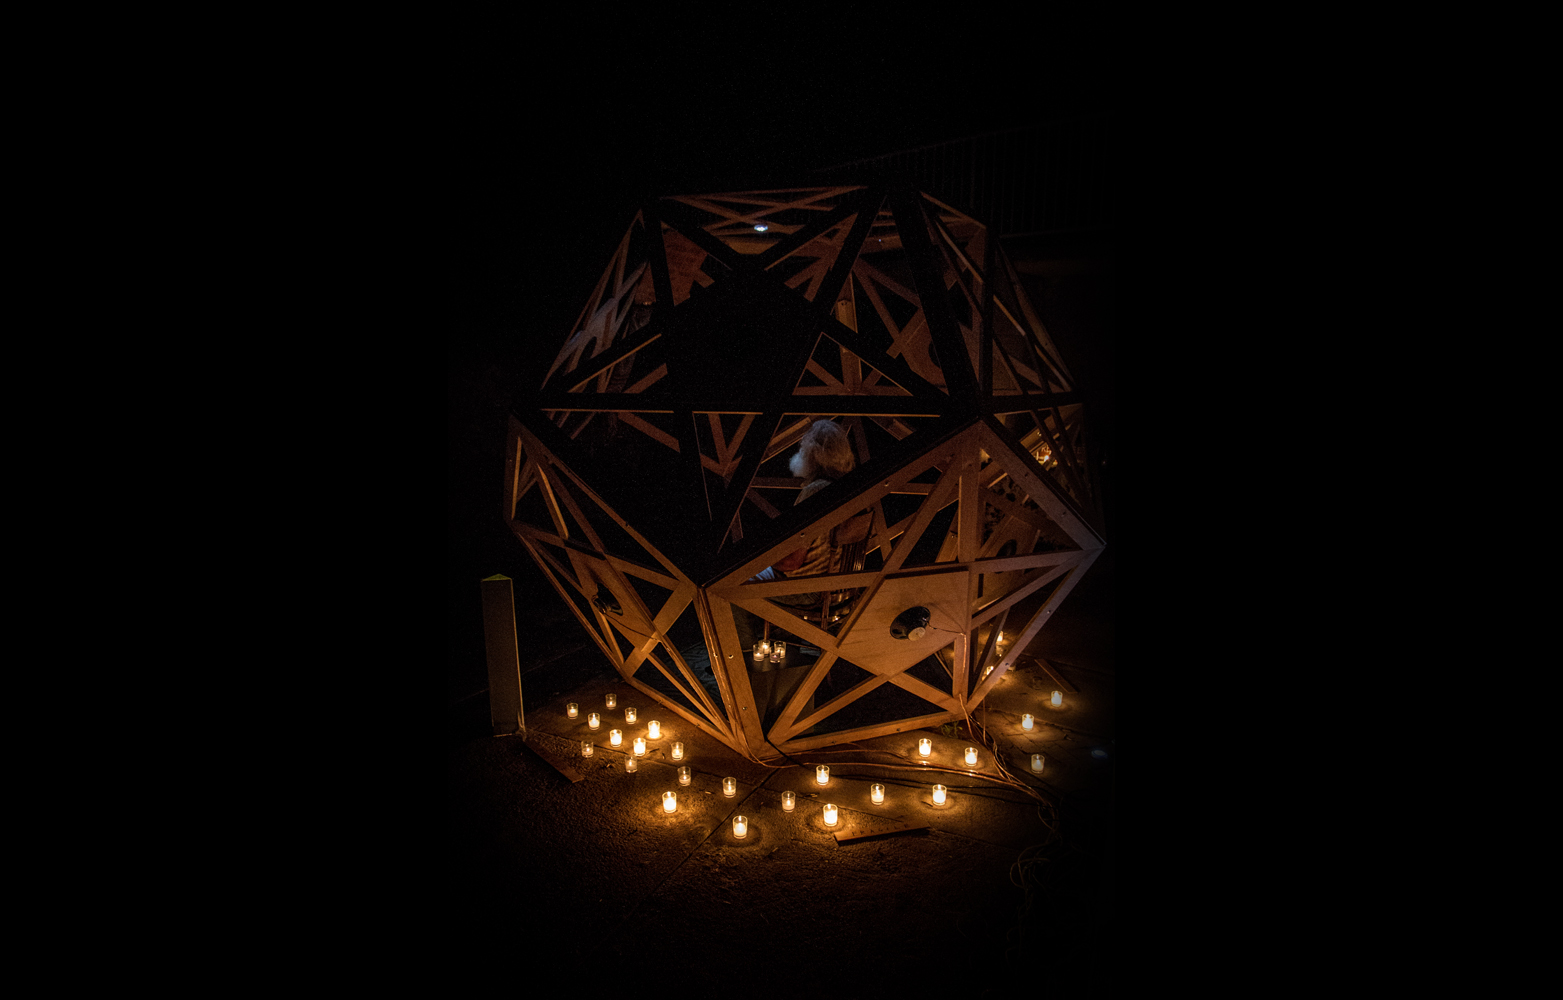 DODECAHEDRON_8.jpg